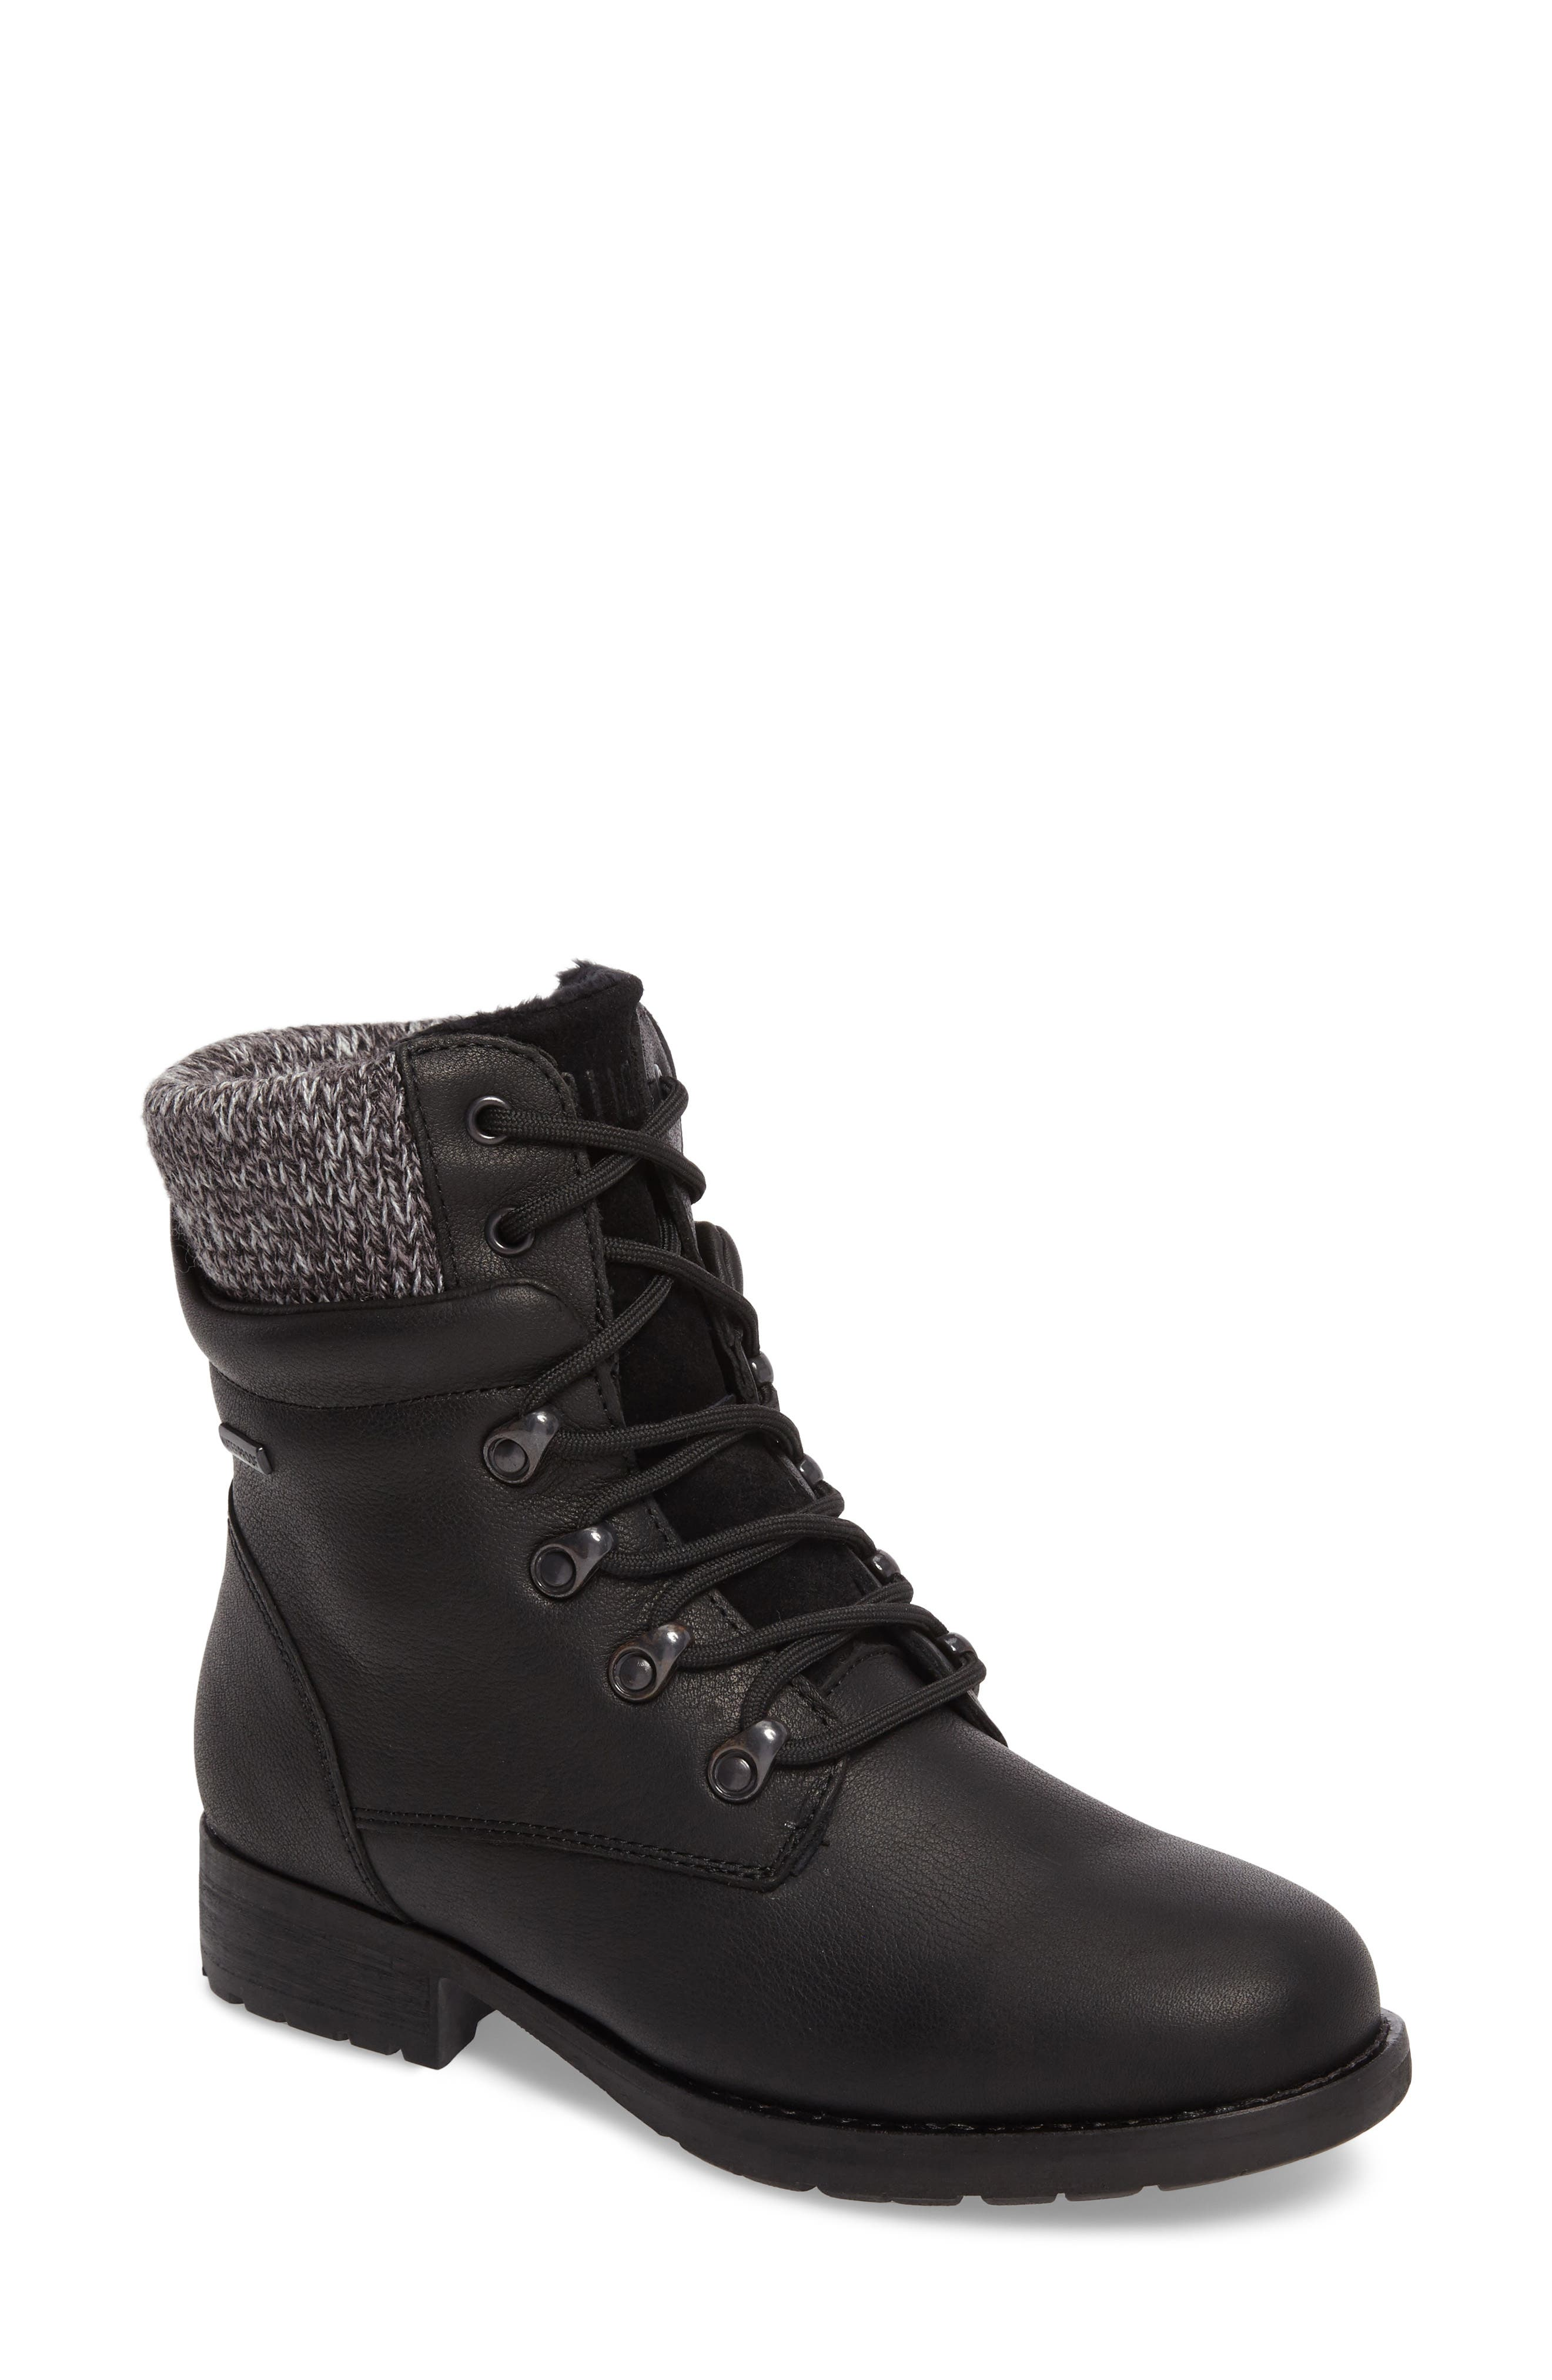 Derry Waterproof Boot,                             Main thumbnail 1, color,                             BLACK LEATHER